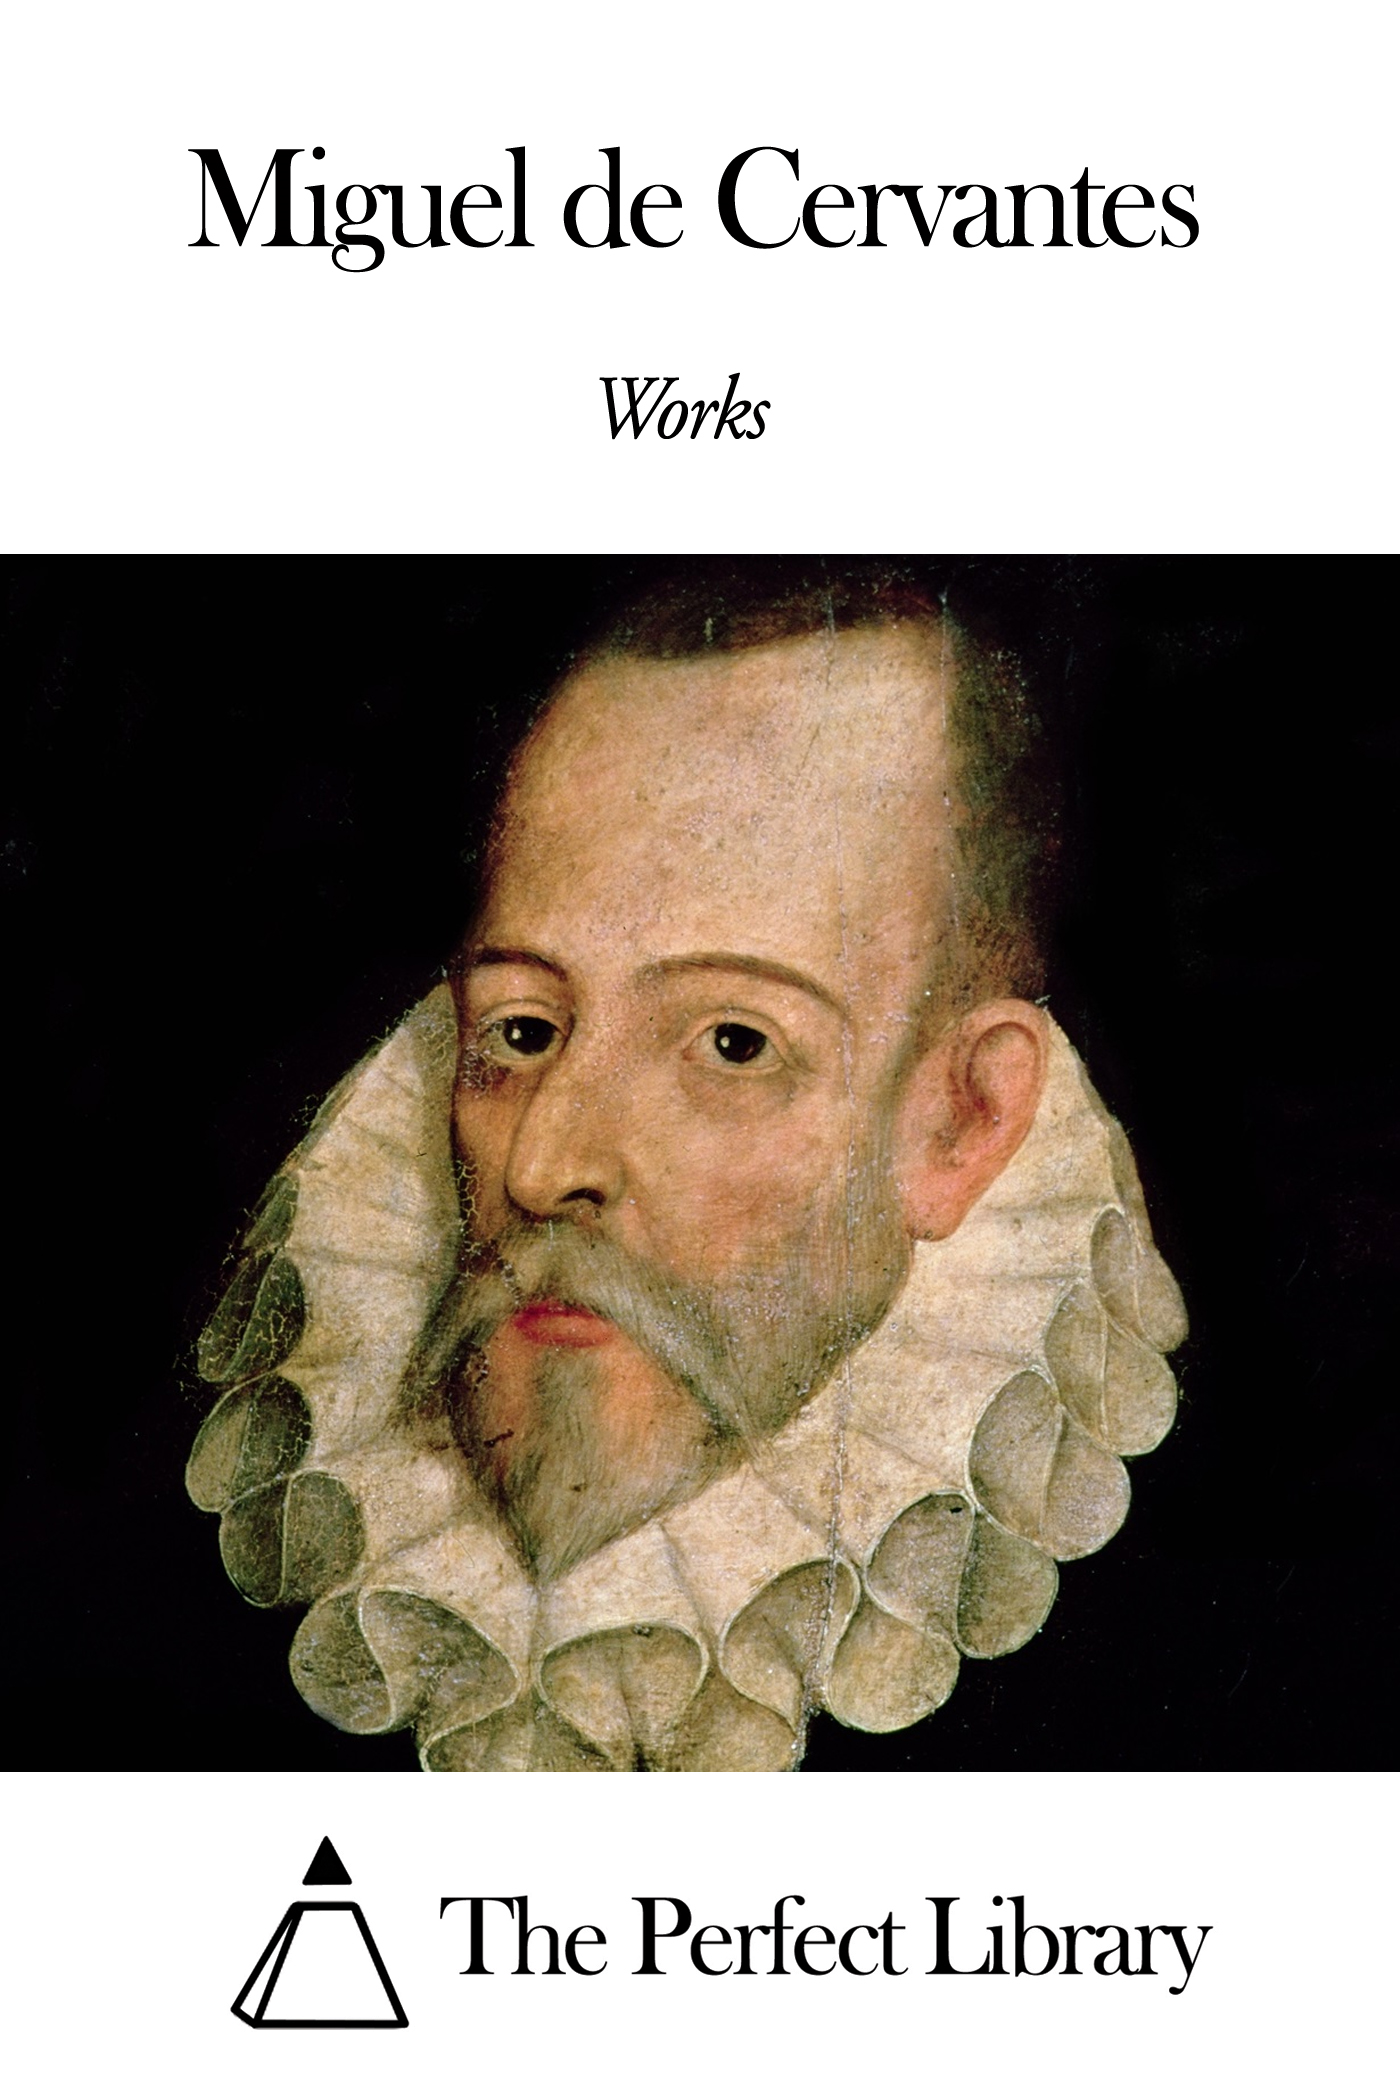 Works of Miguel de Cervantes